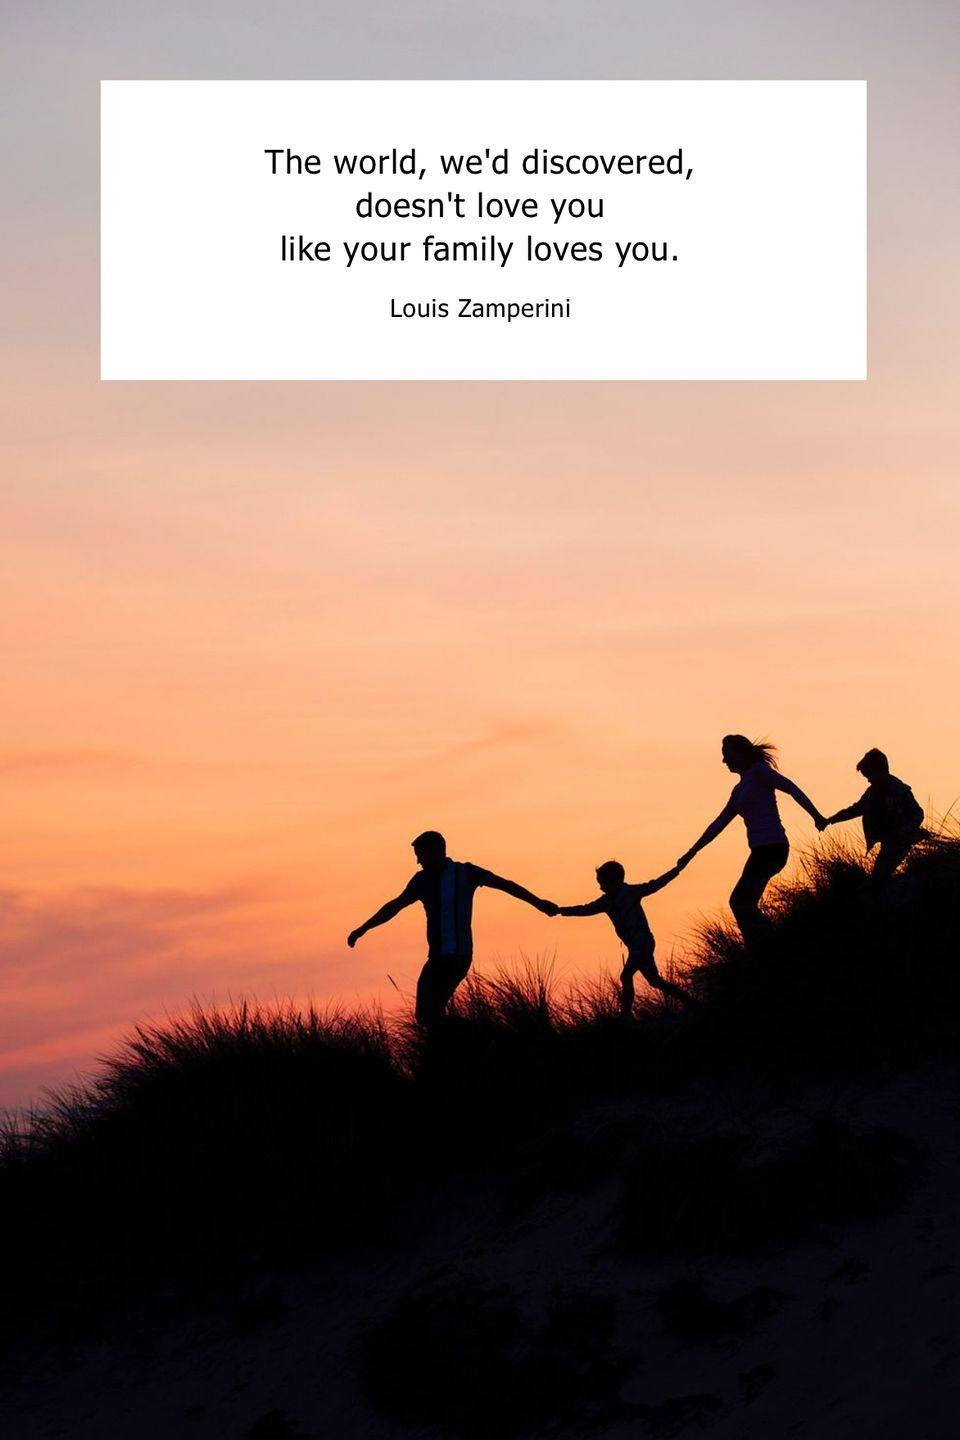 "<p>""The world, we'd discovered, doesn't love you like your family loves you.""</p>"